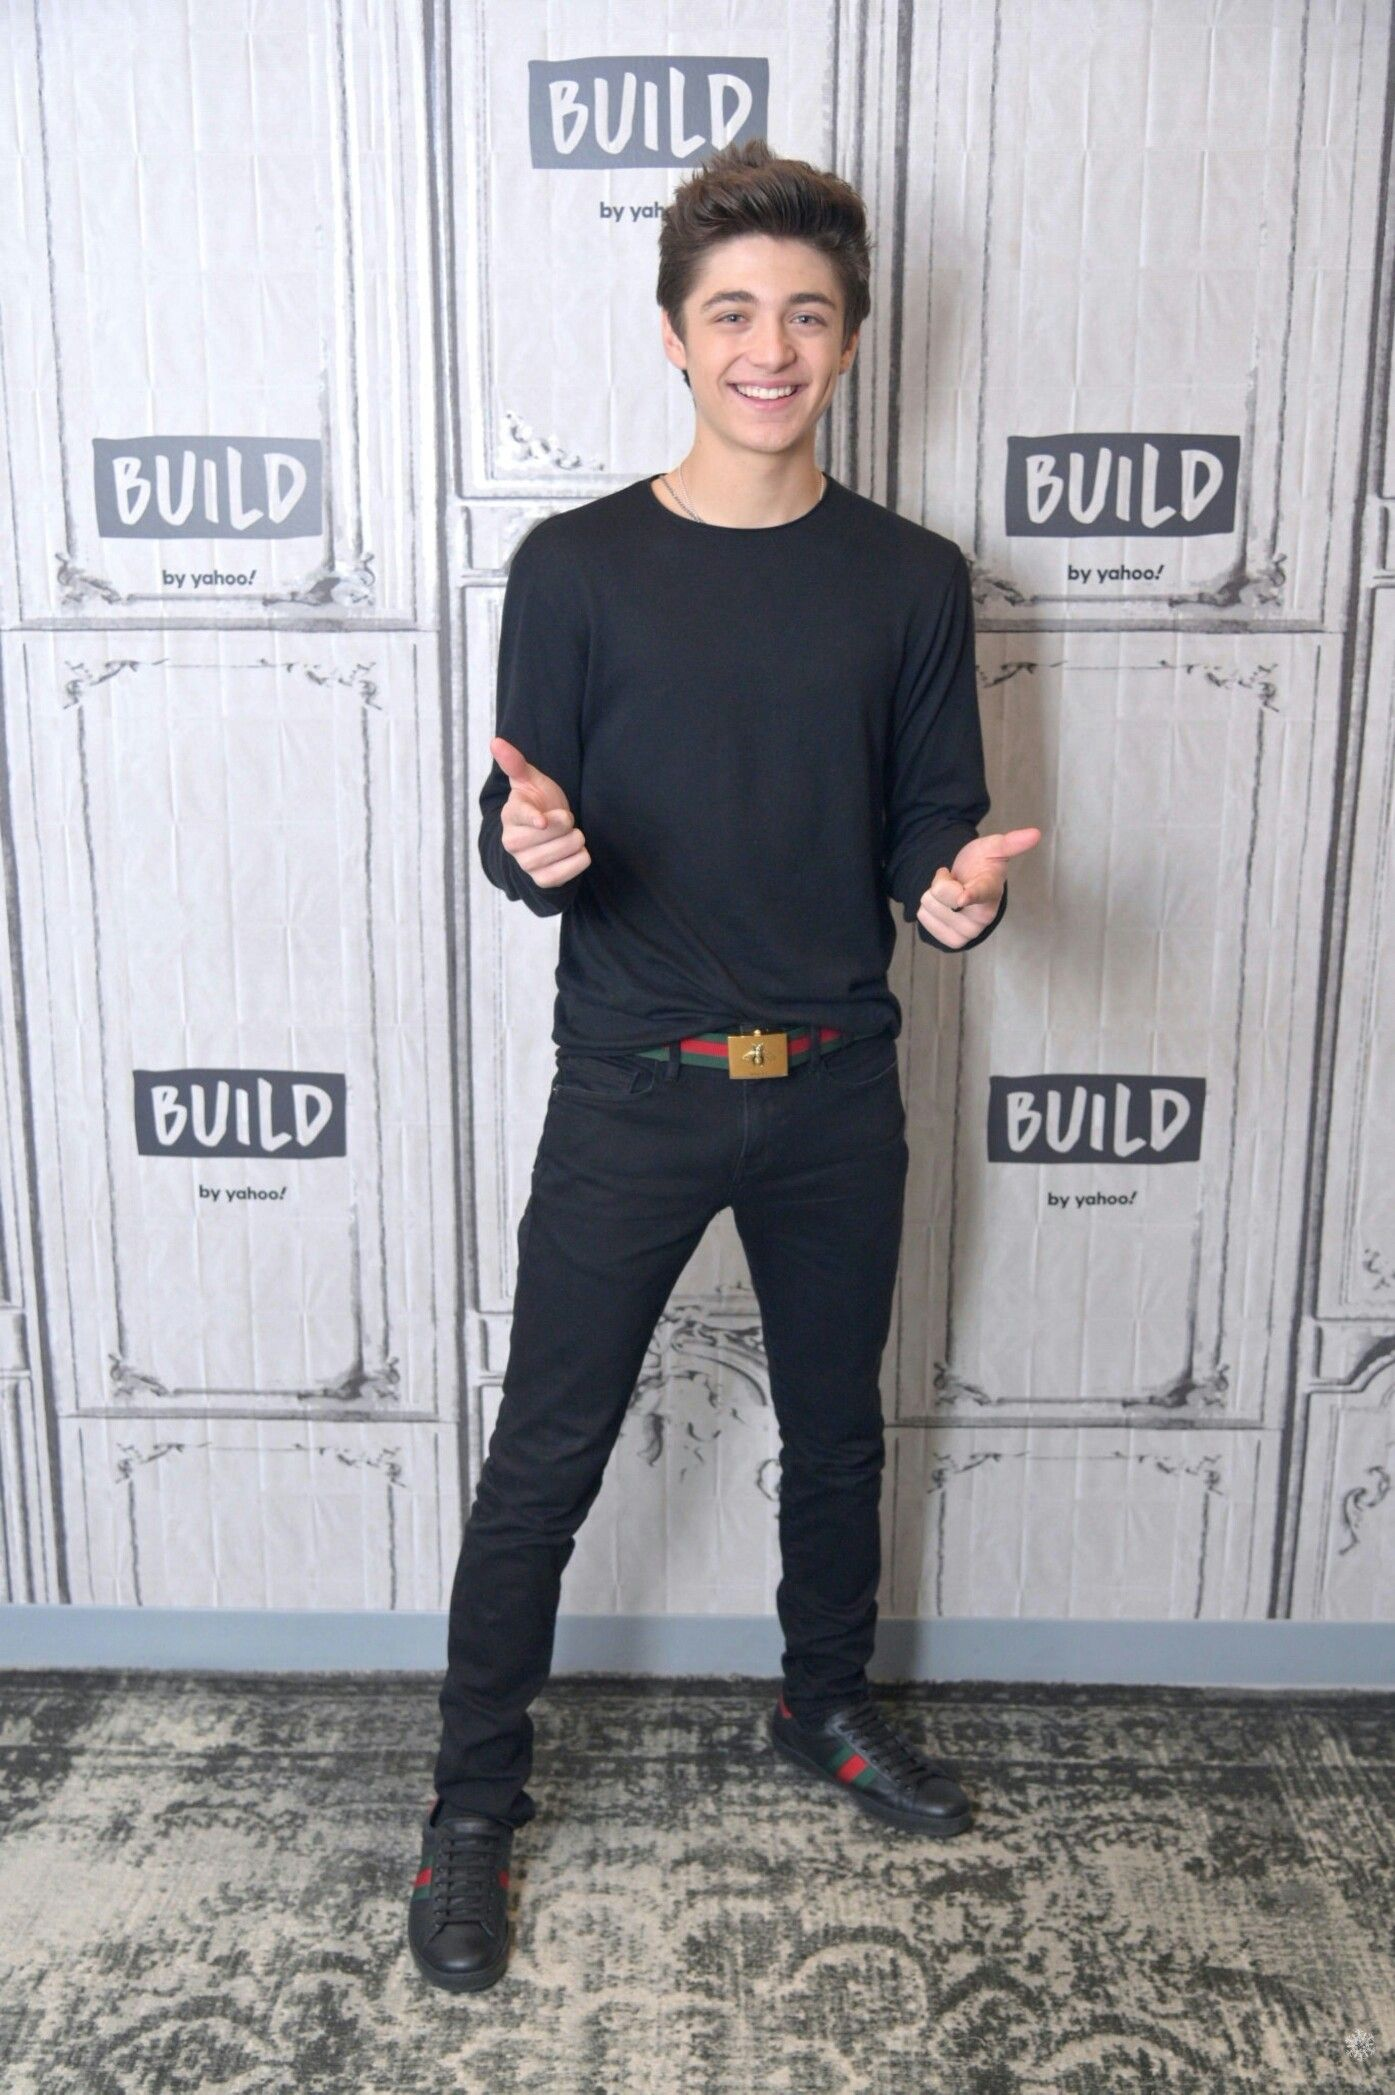 Pin by Therese on Asher Angel in 2020 Tv series, Asher